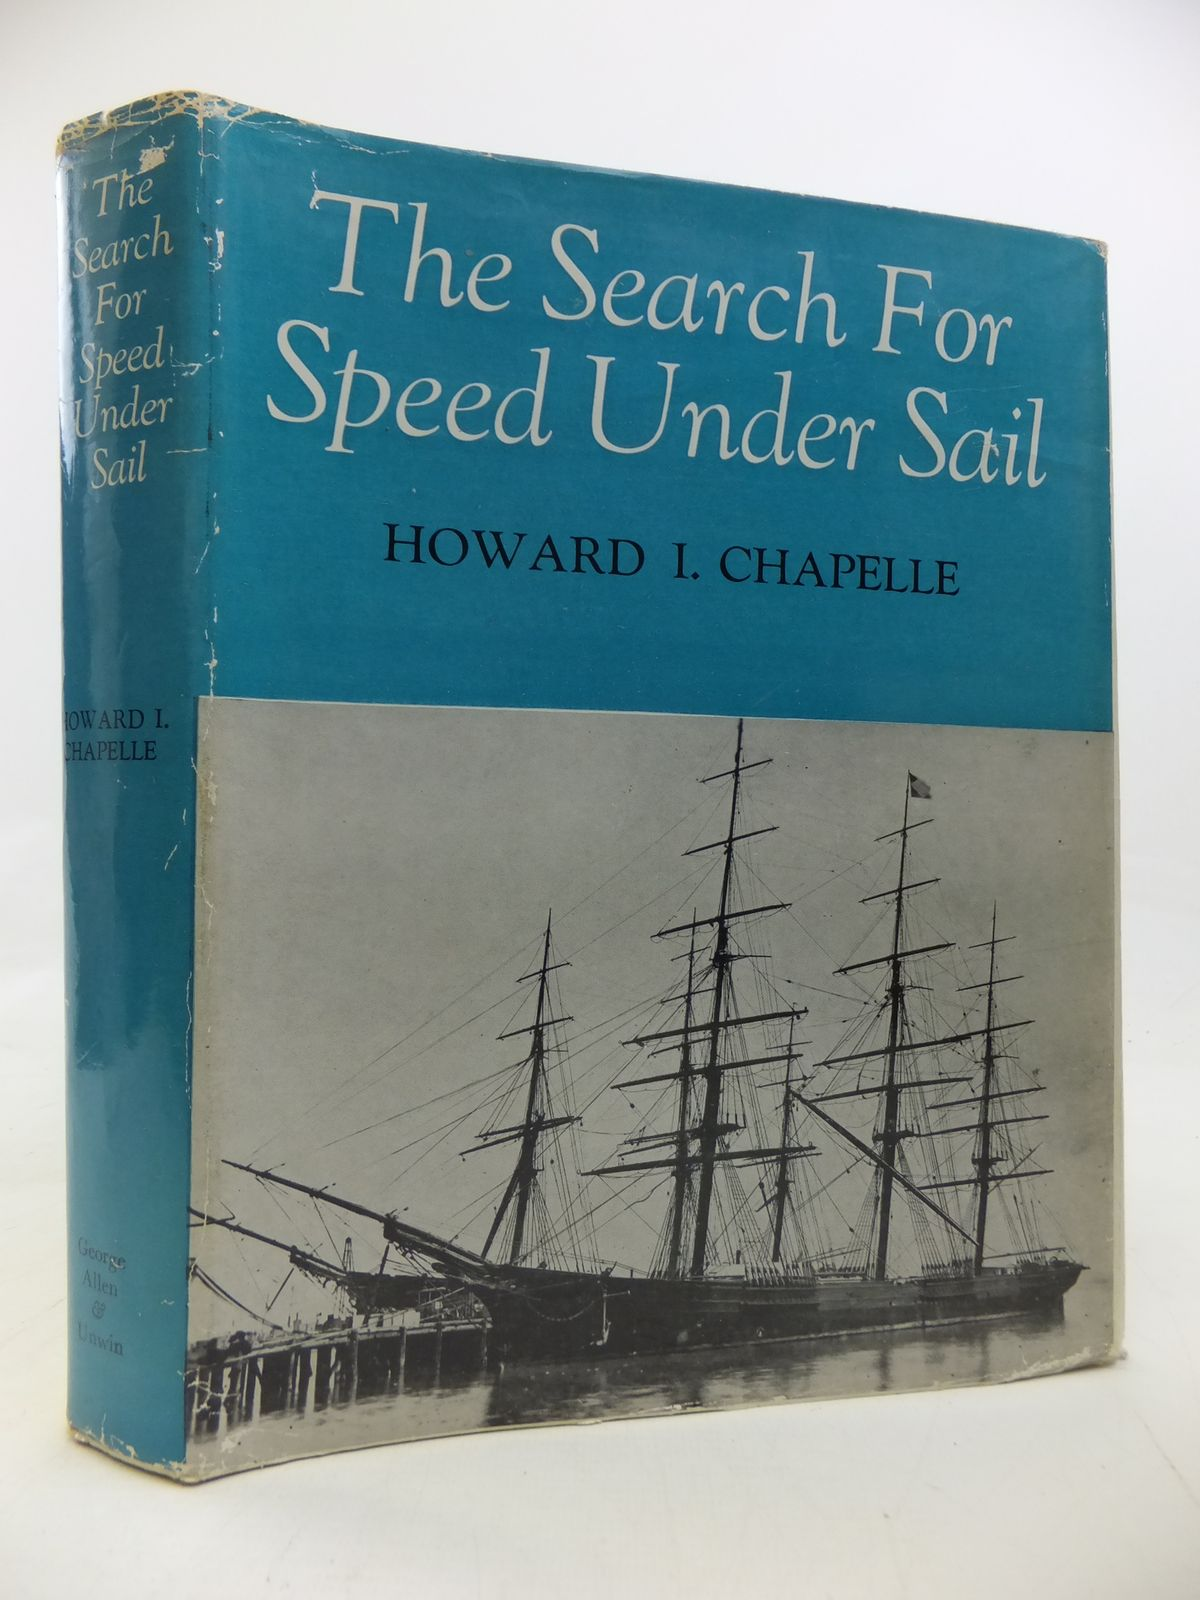 Photo of THE SEARCH FOR SPEED UNDER SAIL 1700 - 1855 written by Chapelle, Howard I. published by George Allen & Unwin Ltd. (STOCK CODE: 2115648)  for sale by Stella & Rose's Books